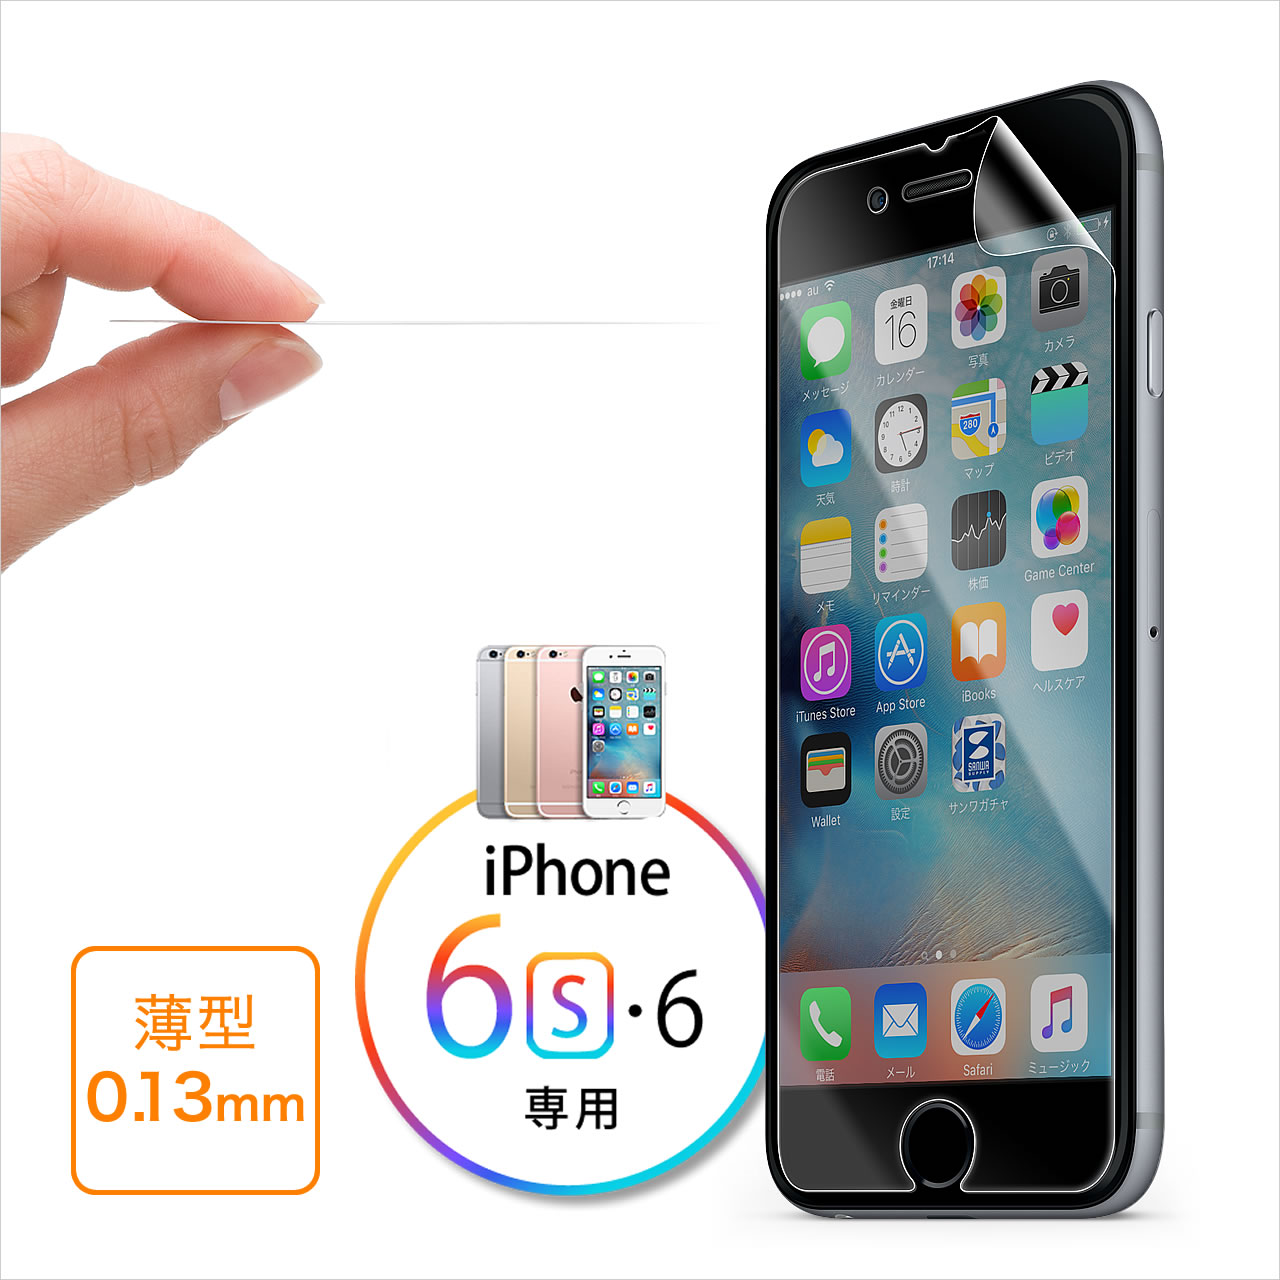 iphone 6s 6 3h 200 lcd032s. Black Bedroom Furniture Sets. Home Design Ideas